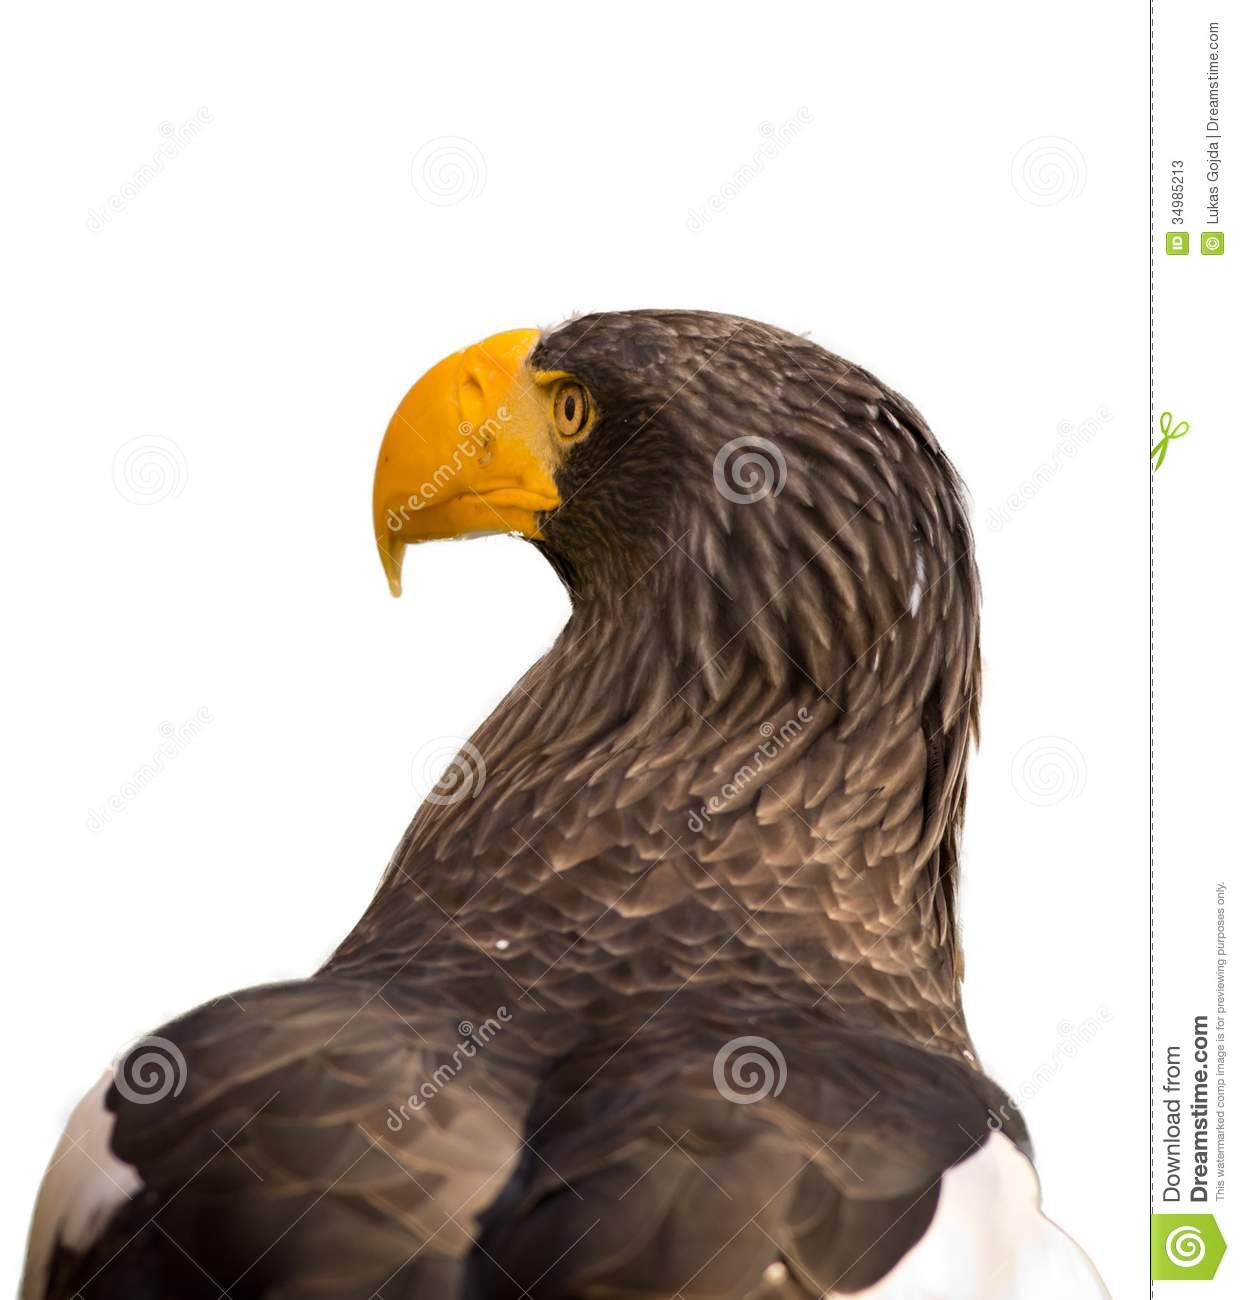 Steller's Sea Eagle clipart #6, Download drawings